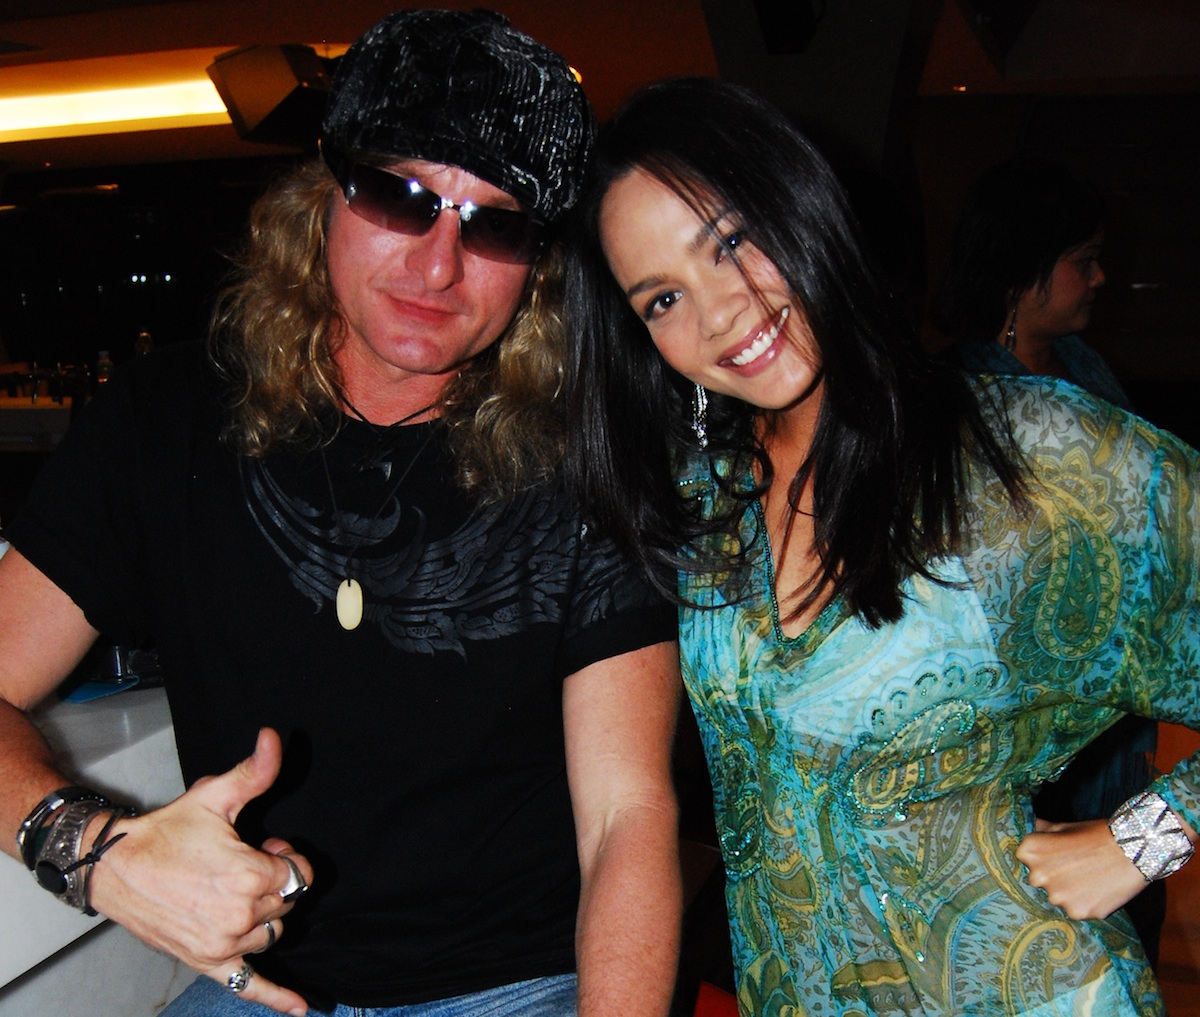 Tommy Train & Sonya couling